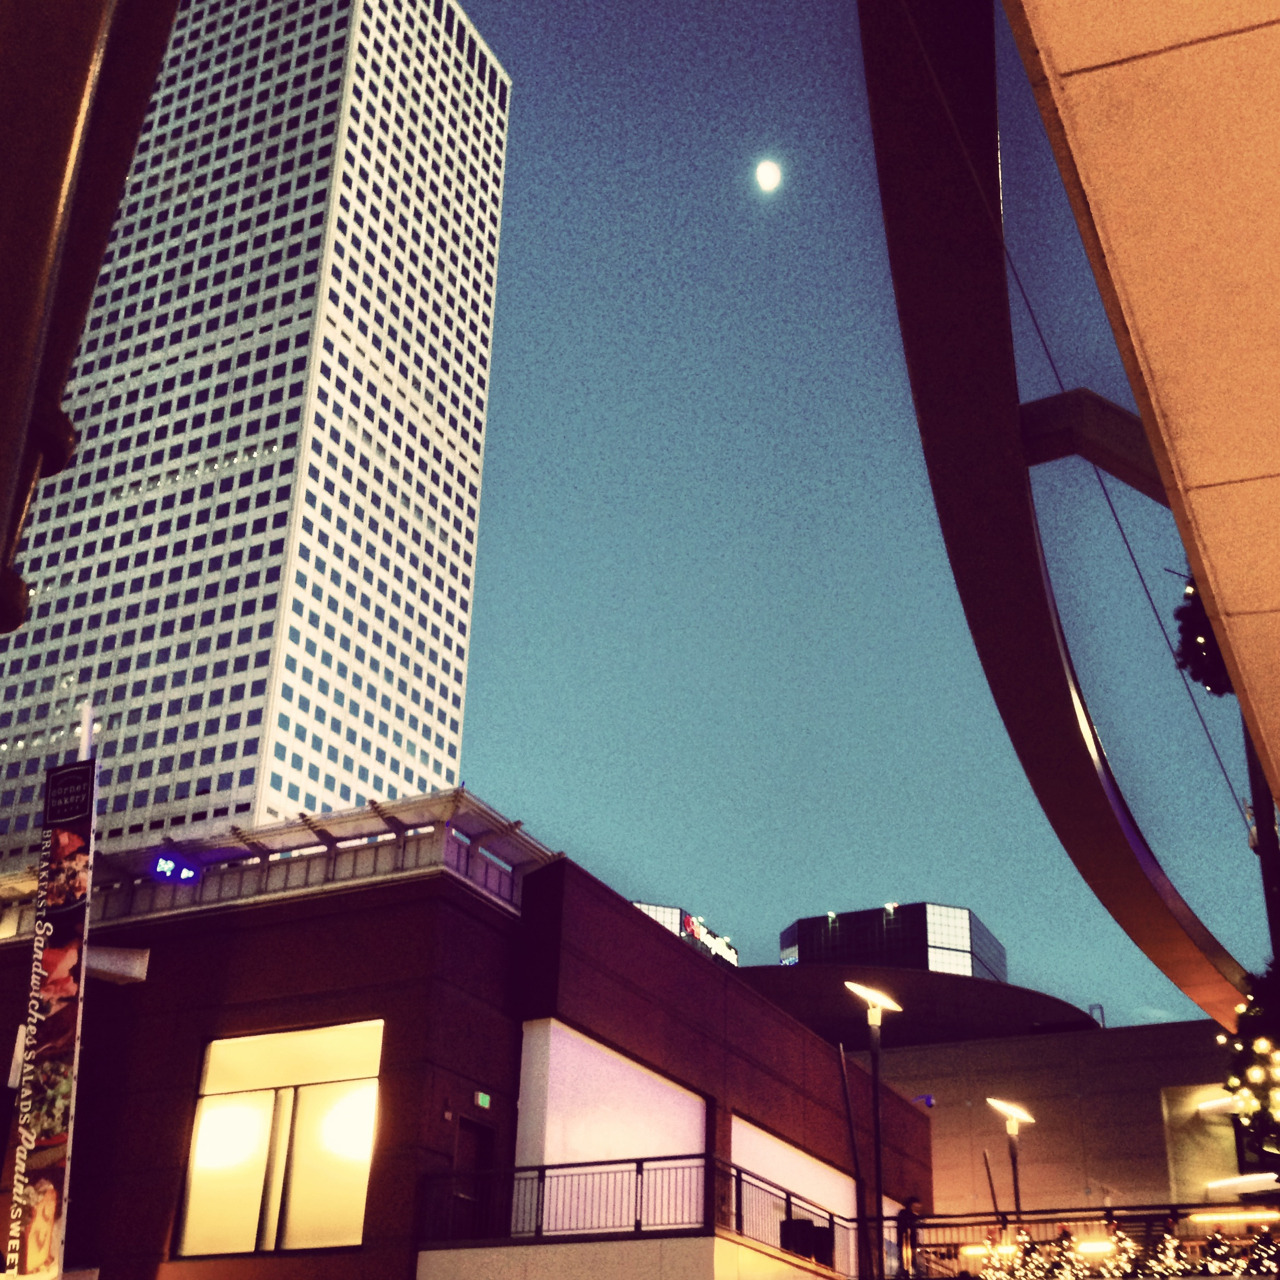 Denver at dusk and the moon. #denver #cityscape #moon